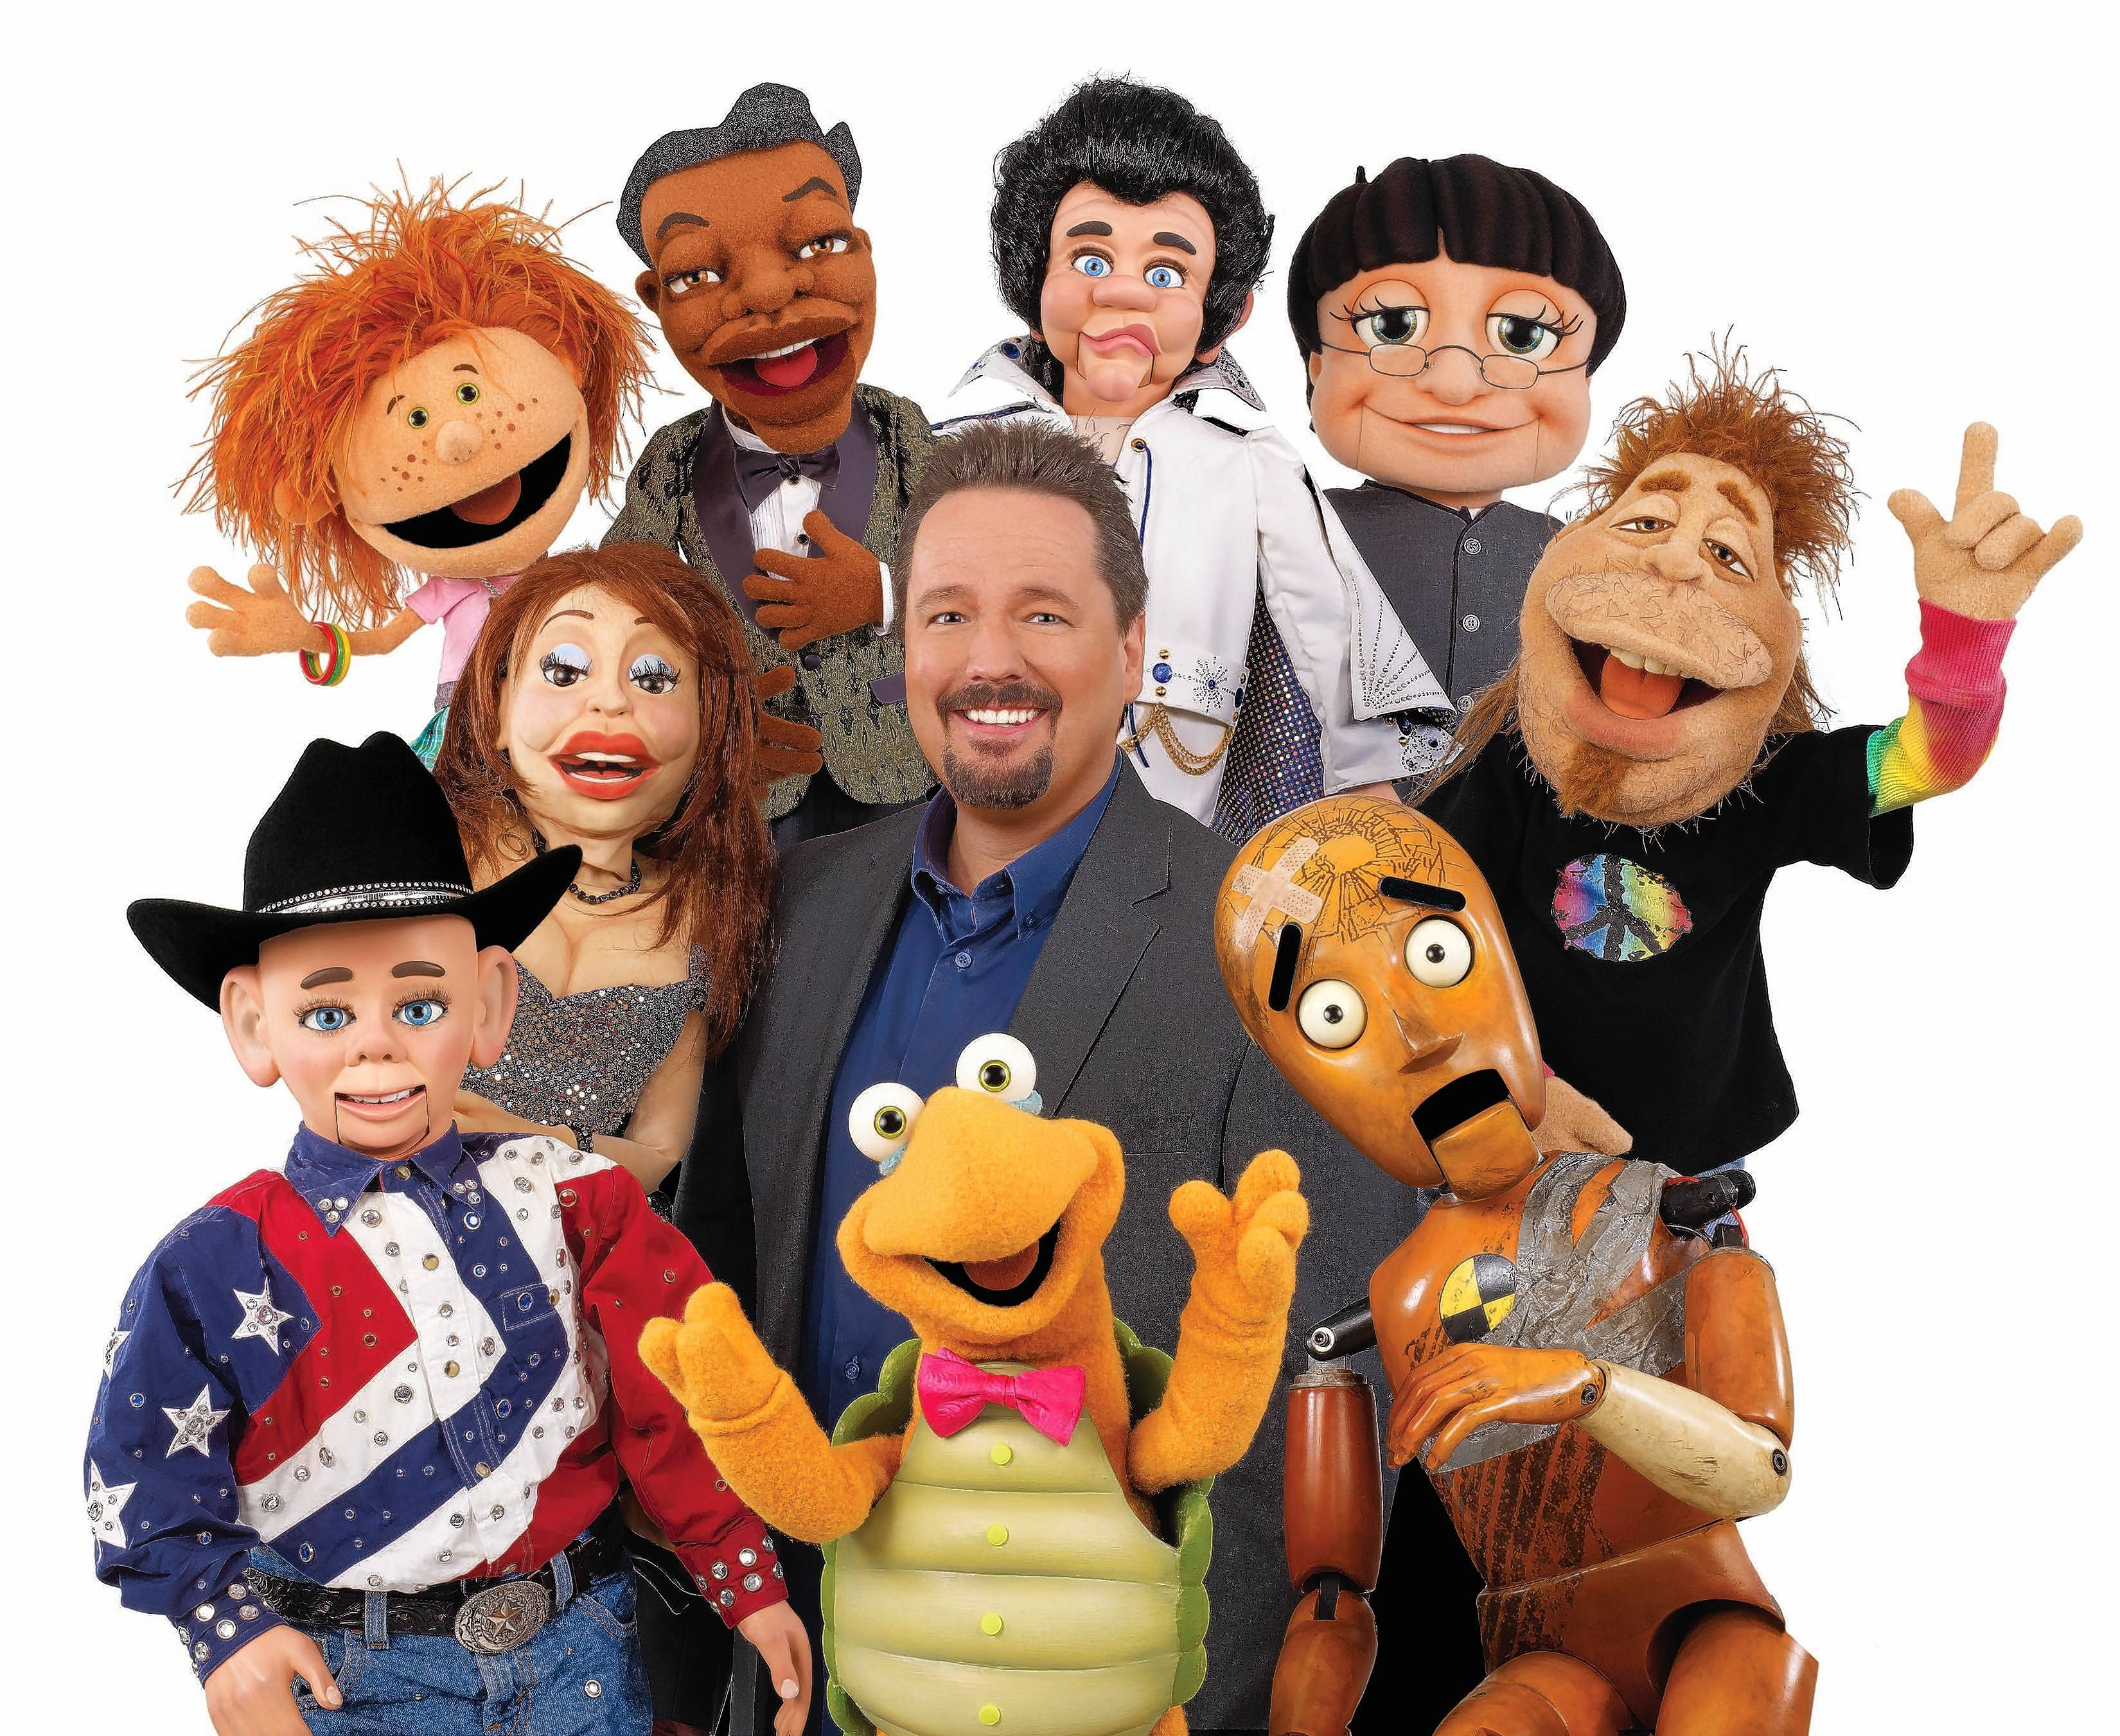 Comedian and ventriloquist Terry Fator performs at both the Genesee Theatre in Waukegan and the Paramount Theatre in Aurora this weekend.